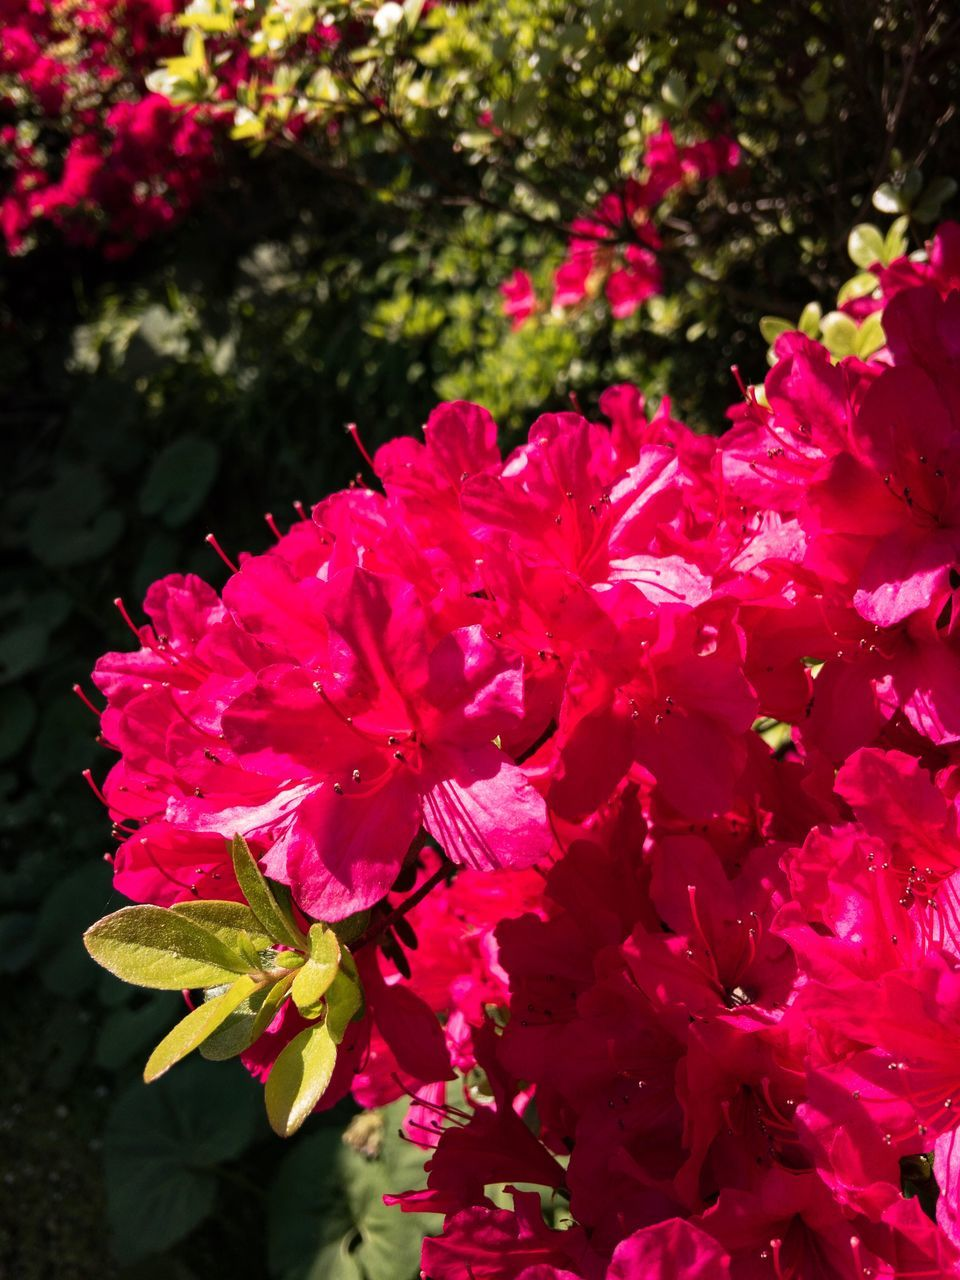 flower, growth, beauty in nature, fragility, petal, freshness, nature, plant, flower head, pink color, blossom, botany, no people, rhododendron, outdoors, springtime, close-up, day, blooming, red, stamen, bougainvillea, leaf, water, petunia